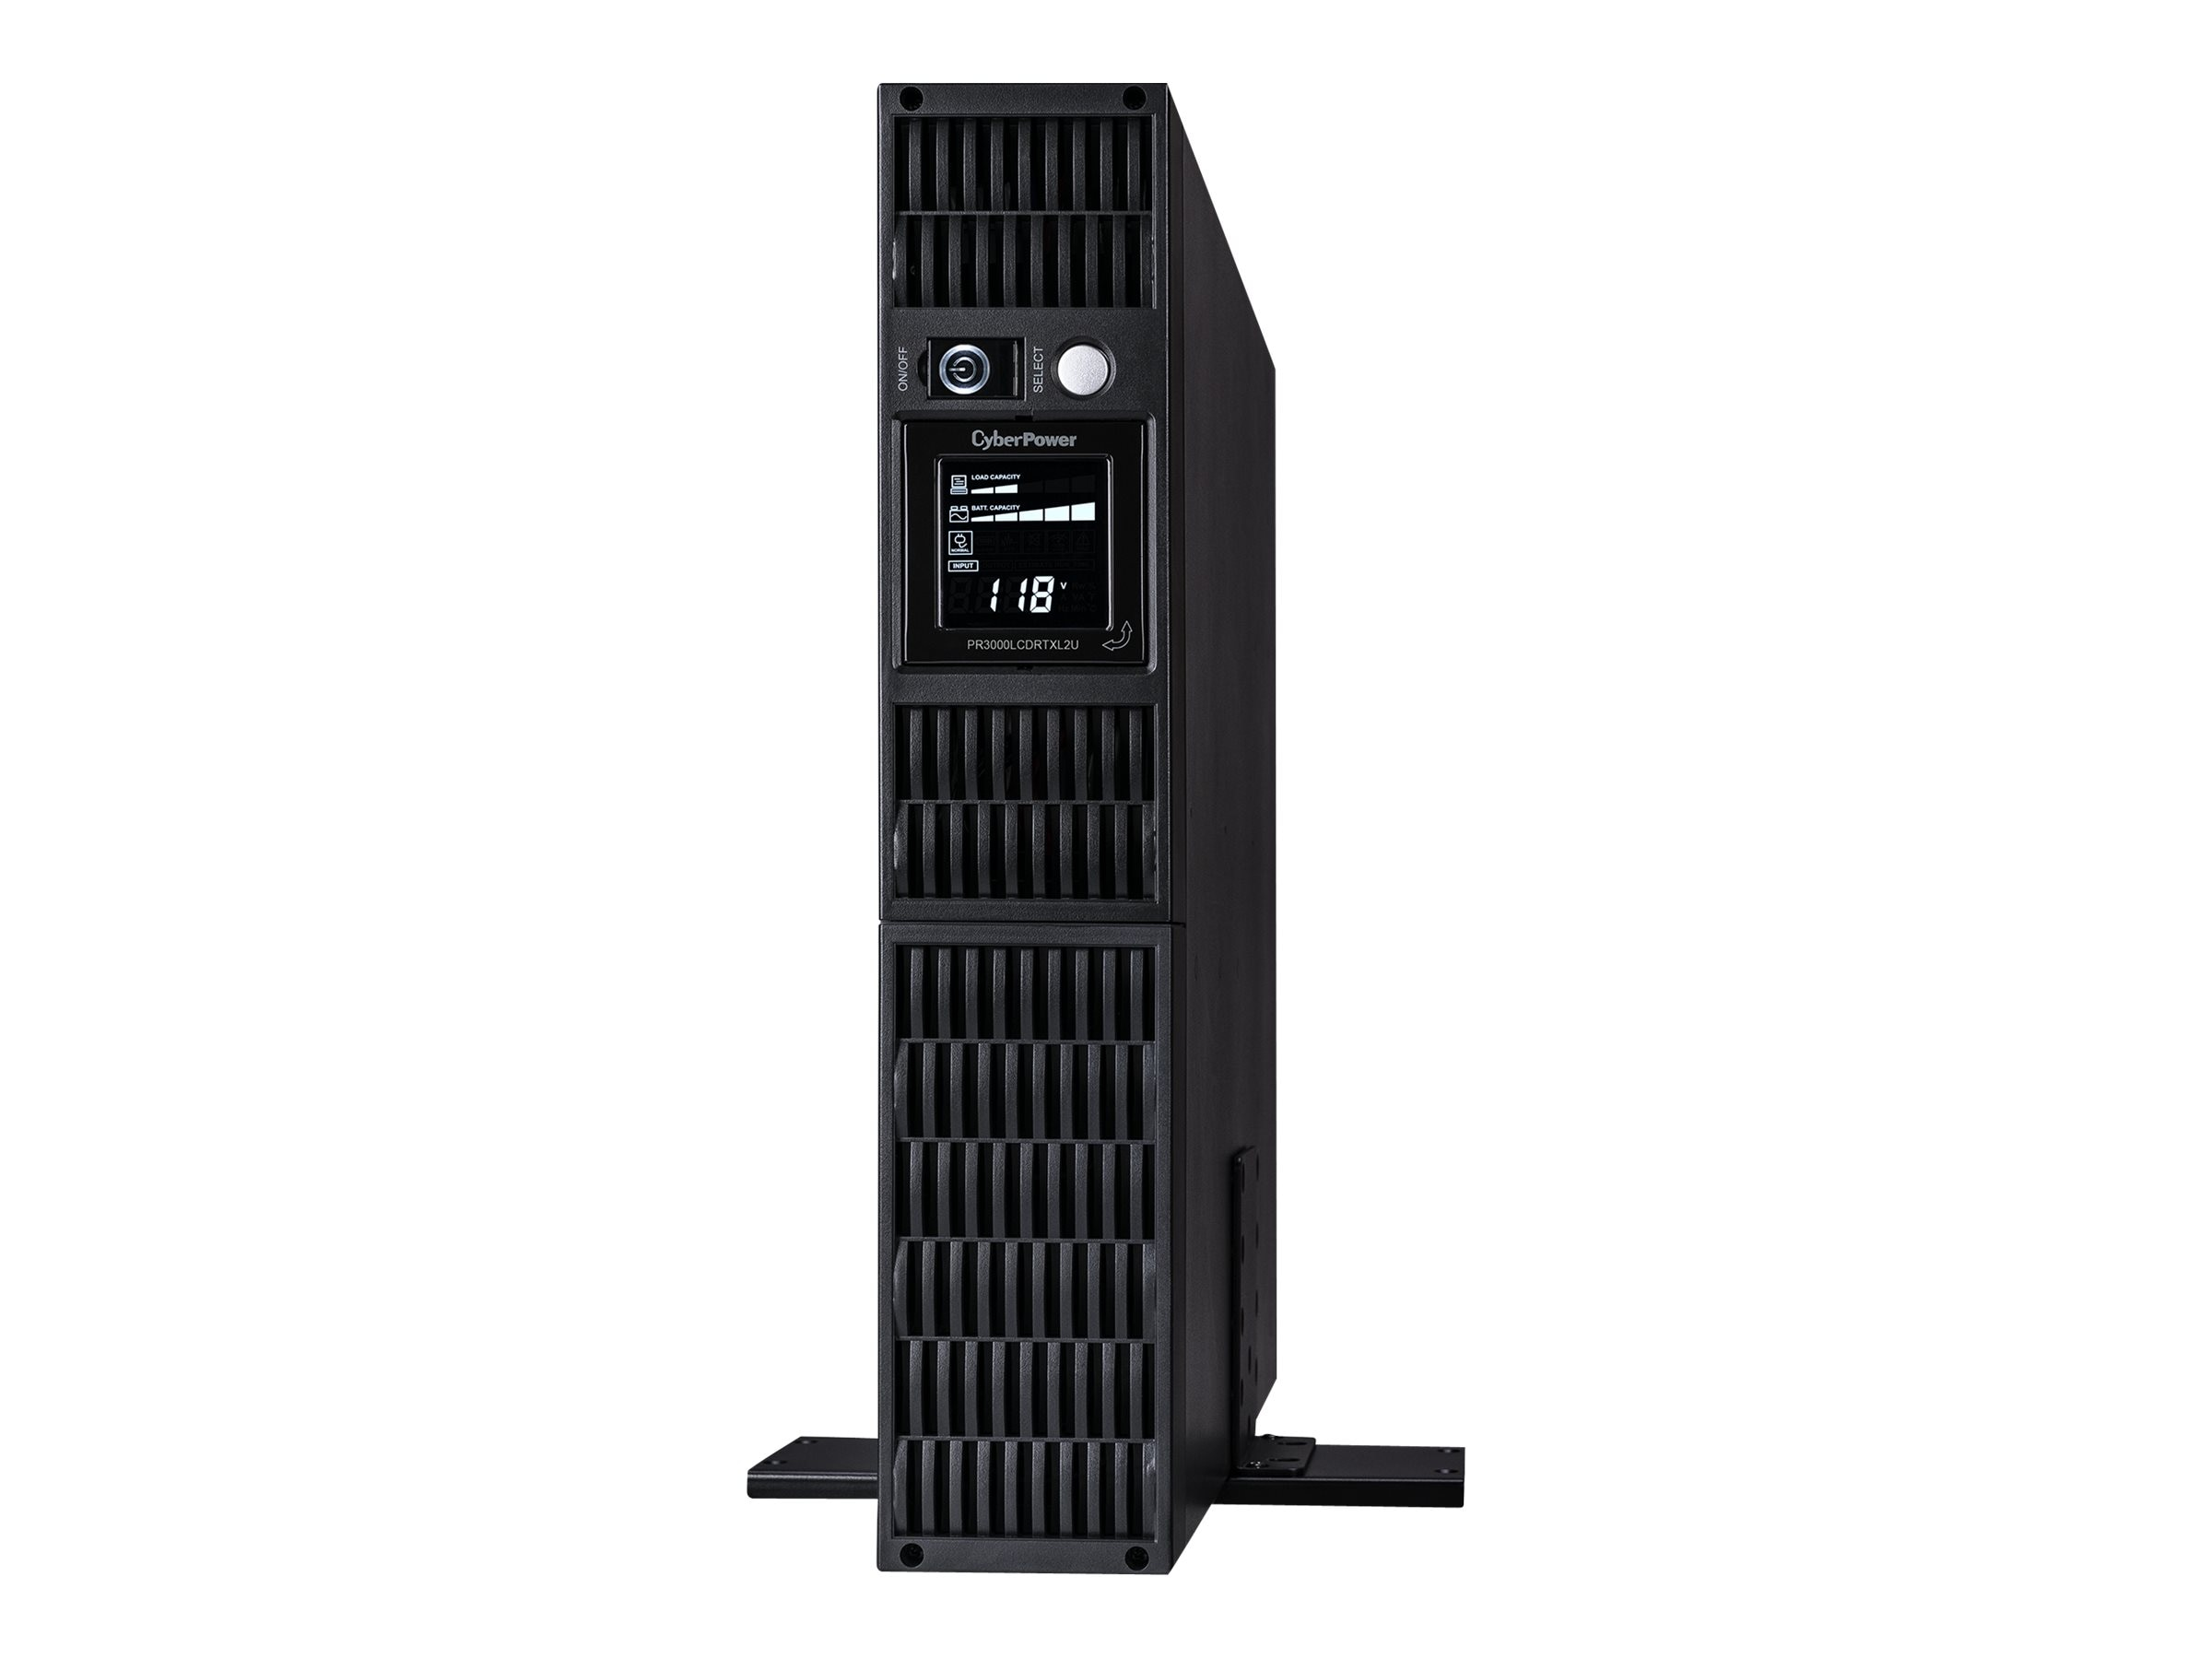 CyberPower UPS 3000VA 3000W Intelligent LCD Pure Sinewave, Line-interactive UPS, PR3000LCDRTXL2U, 11204501, Battery Backup/UPS